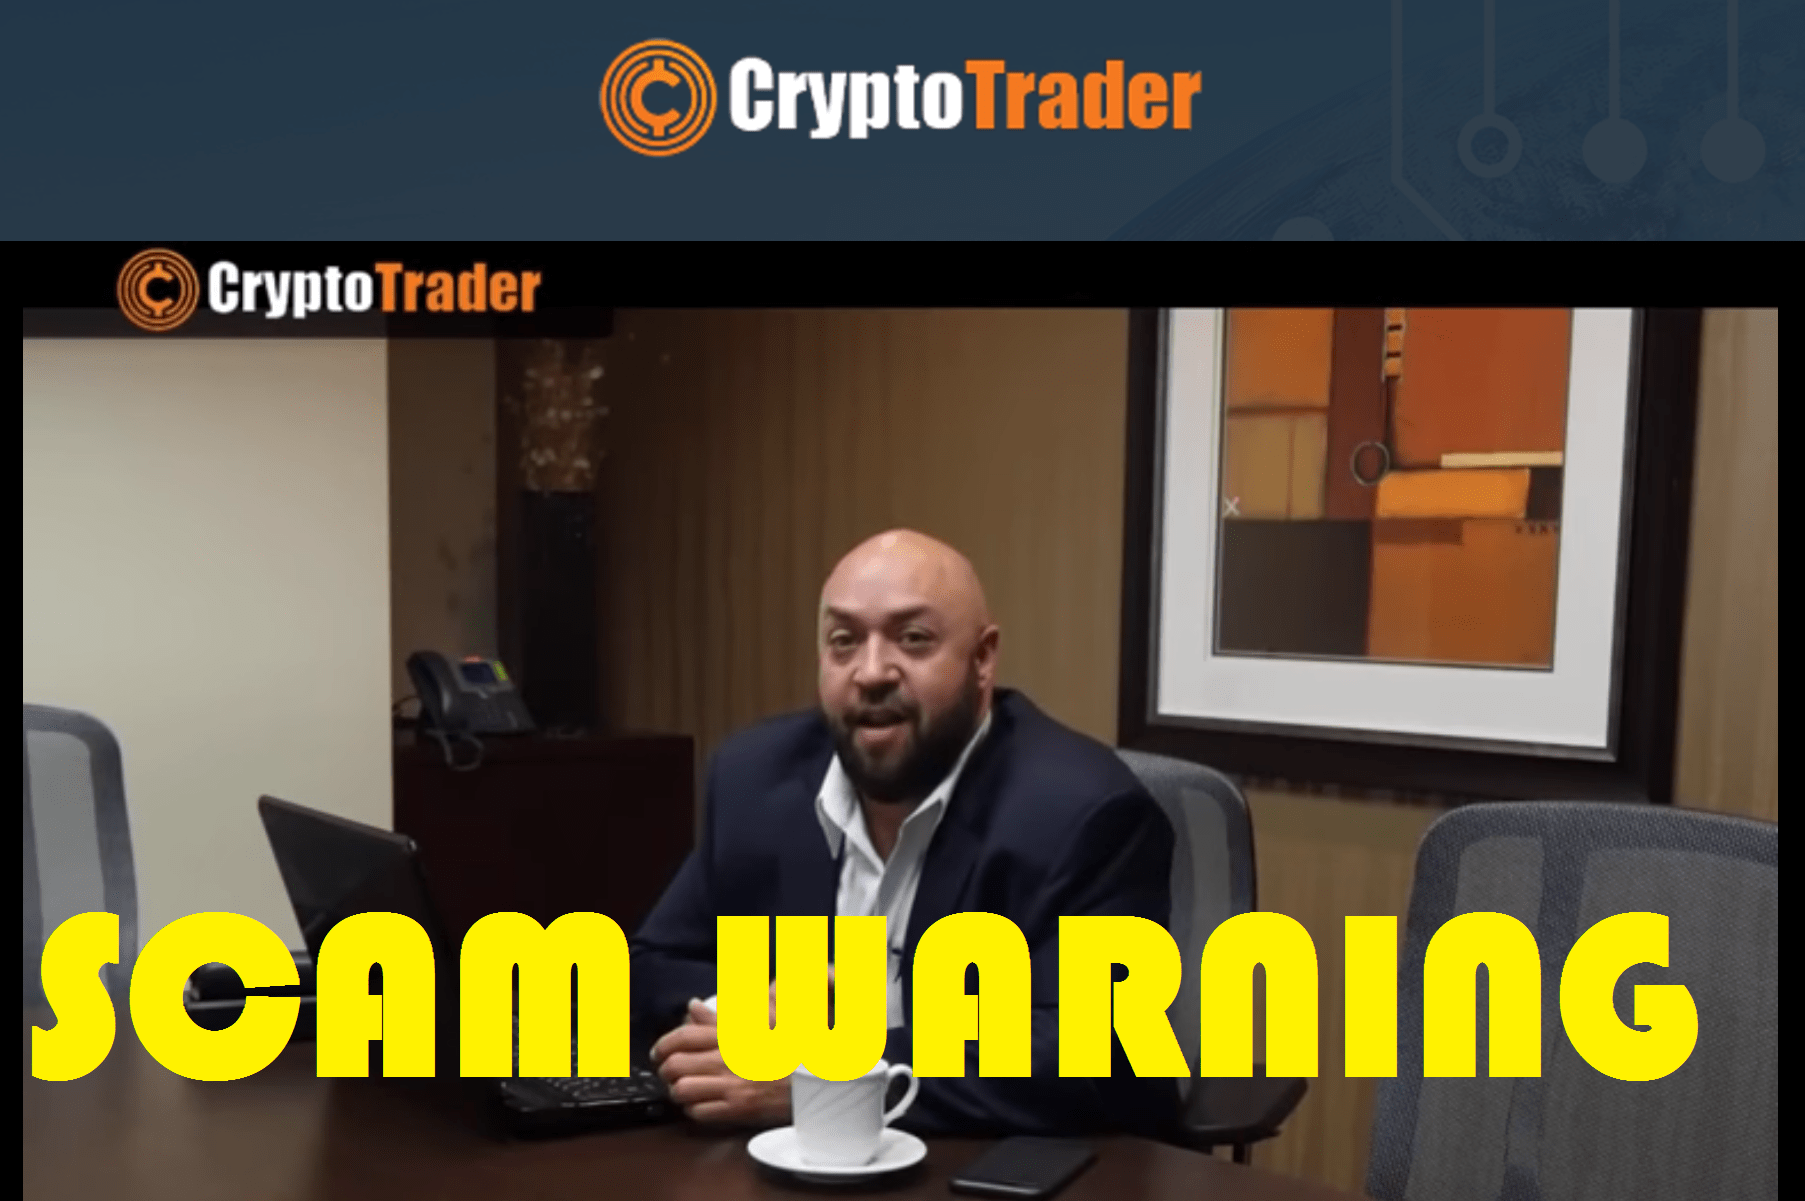 Crypto Trader Beoordeling SCAM! – David Richmond Fraude Production!!